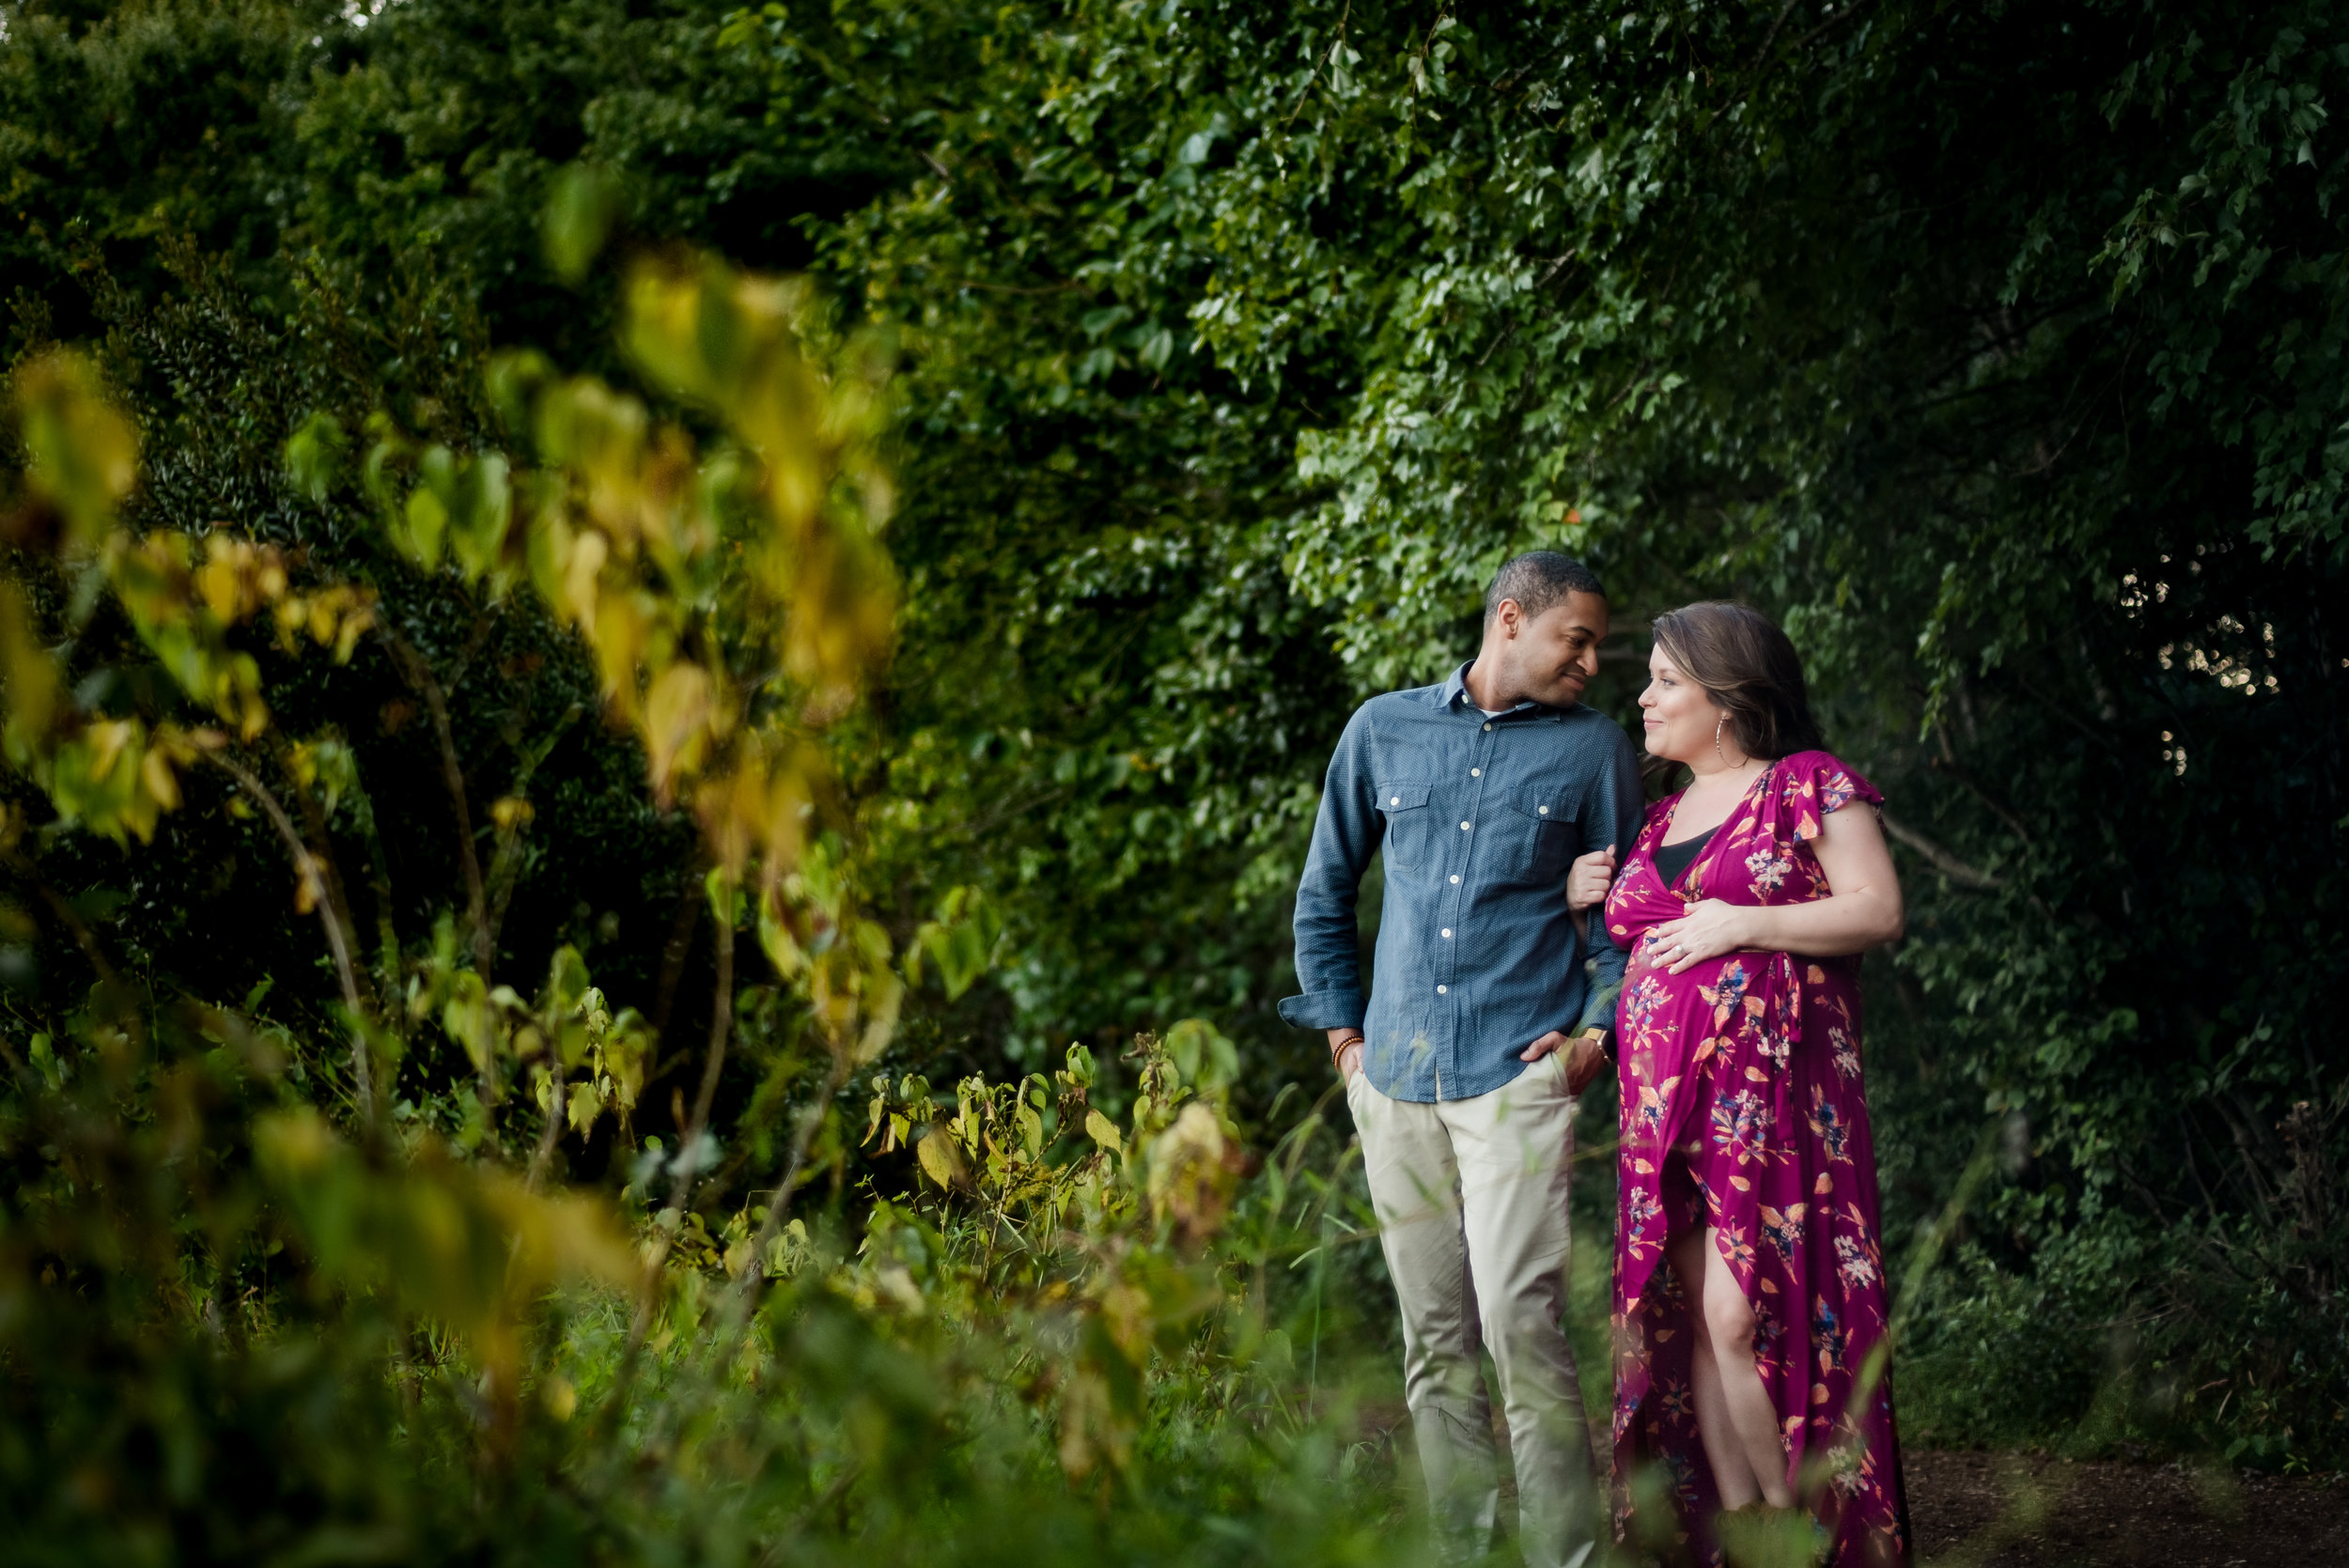 Lifestyle home maternity session in Holly Springs | Lifestyle photographer, Ariana Watts